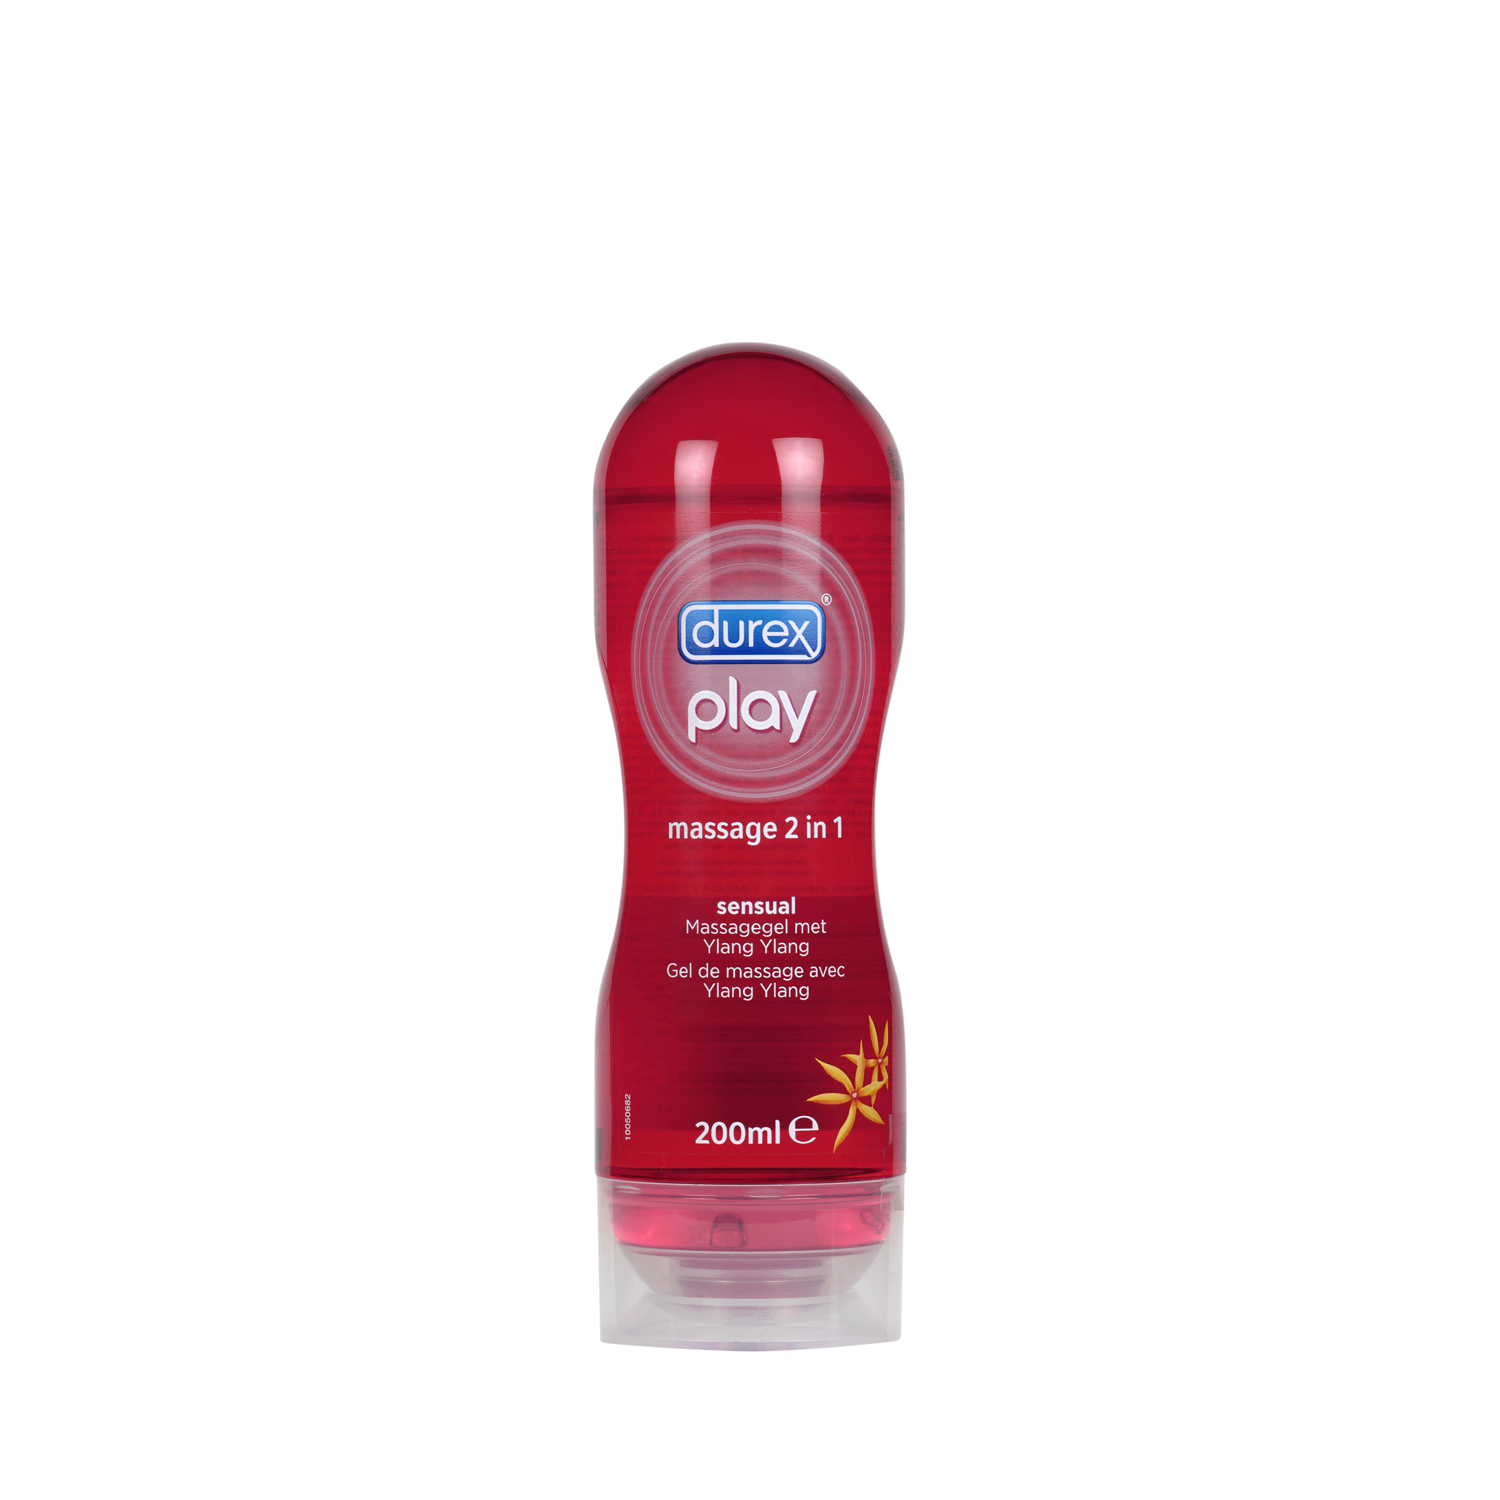 Play 2 en 1 Massage Sensual Ylang Ylang